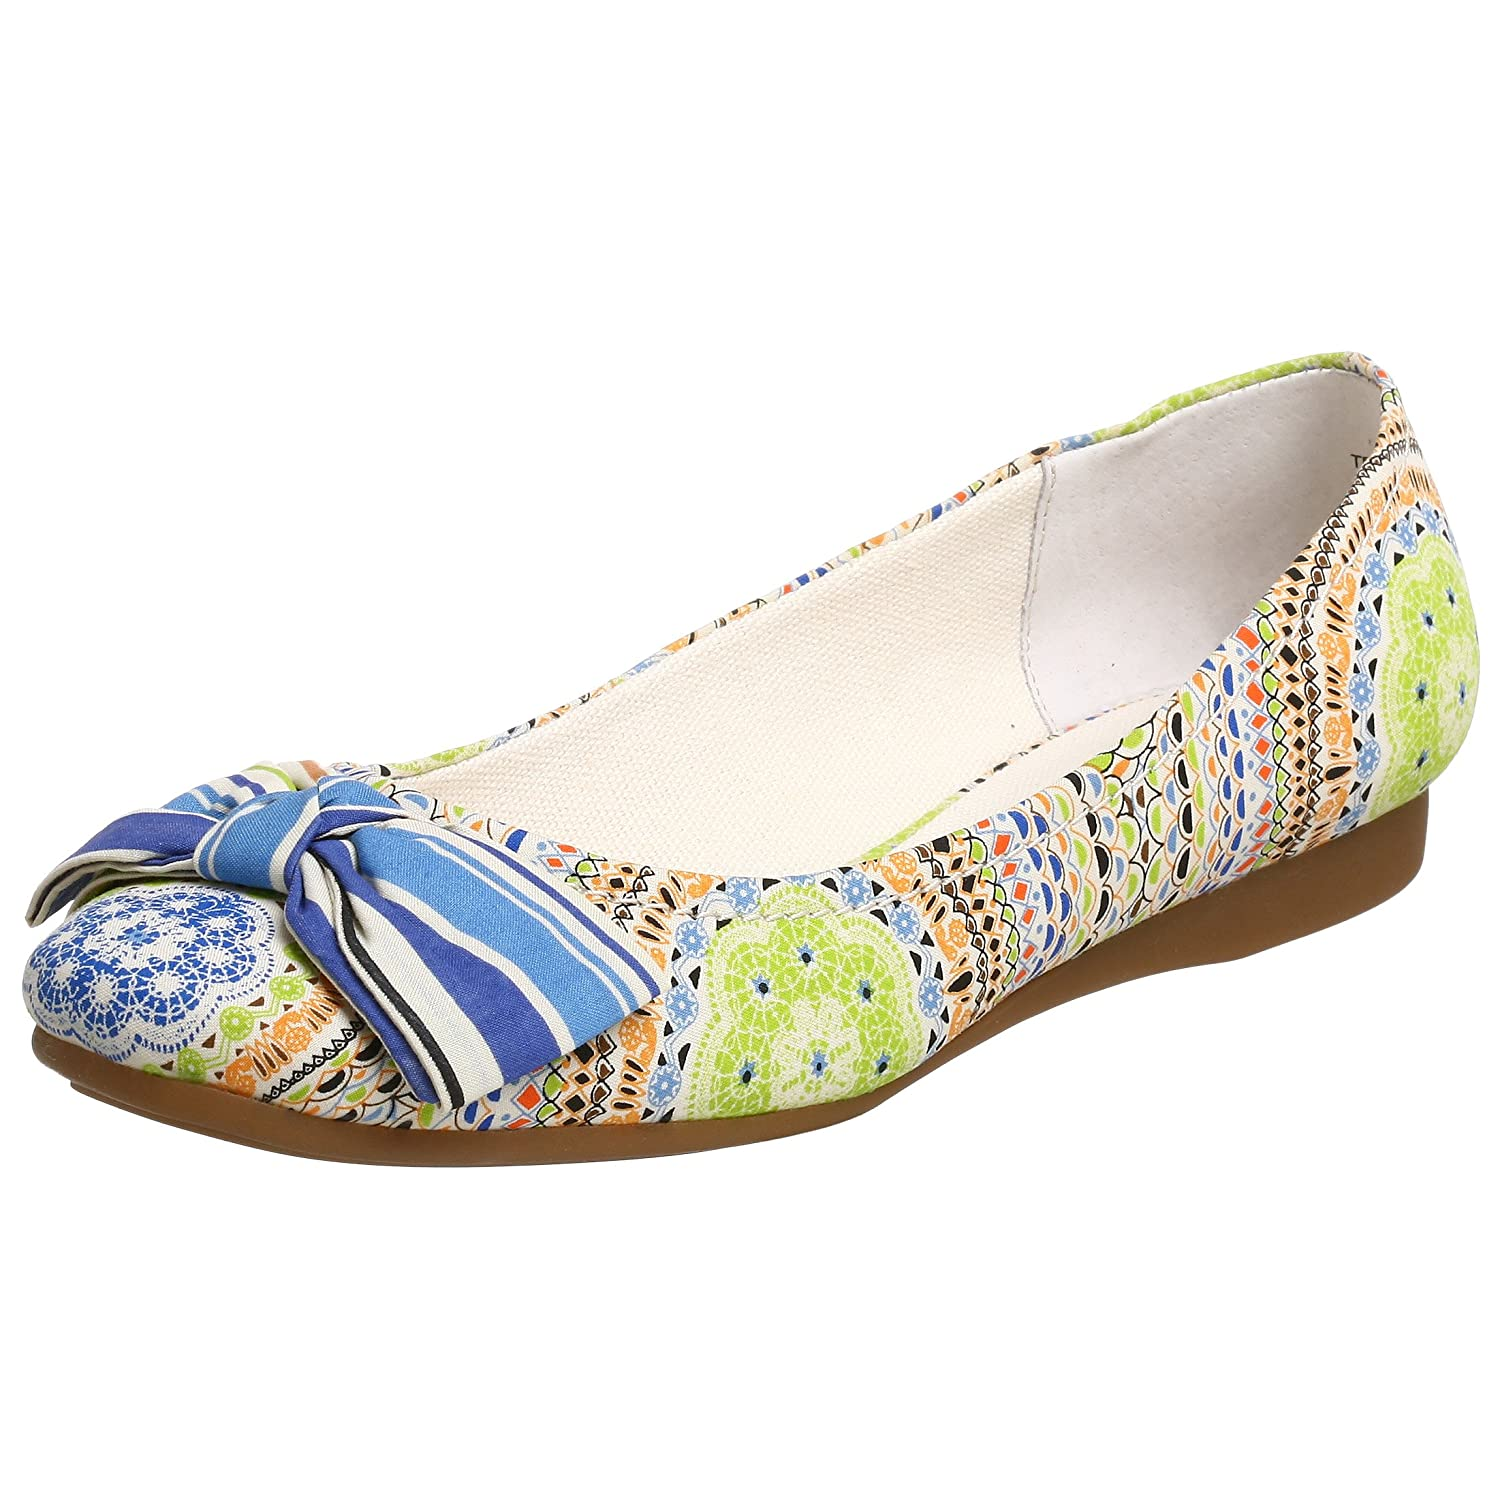 Nine West Women's Isadora Ballet Flat - Free Overnight Shipping & Return Shipping: Endless.com from endless.com